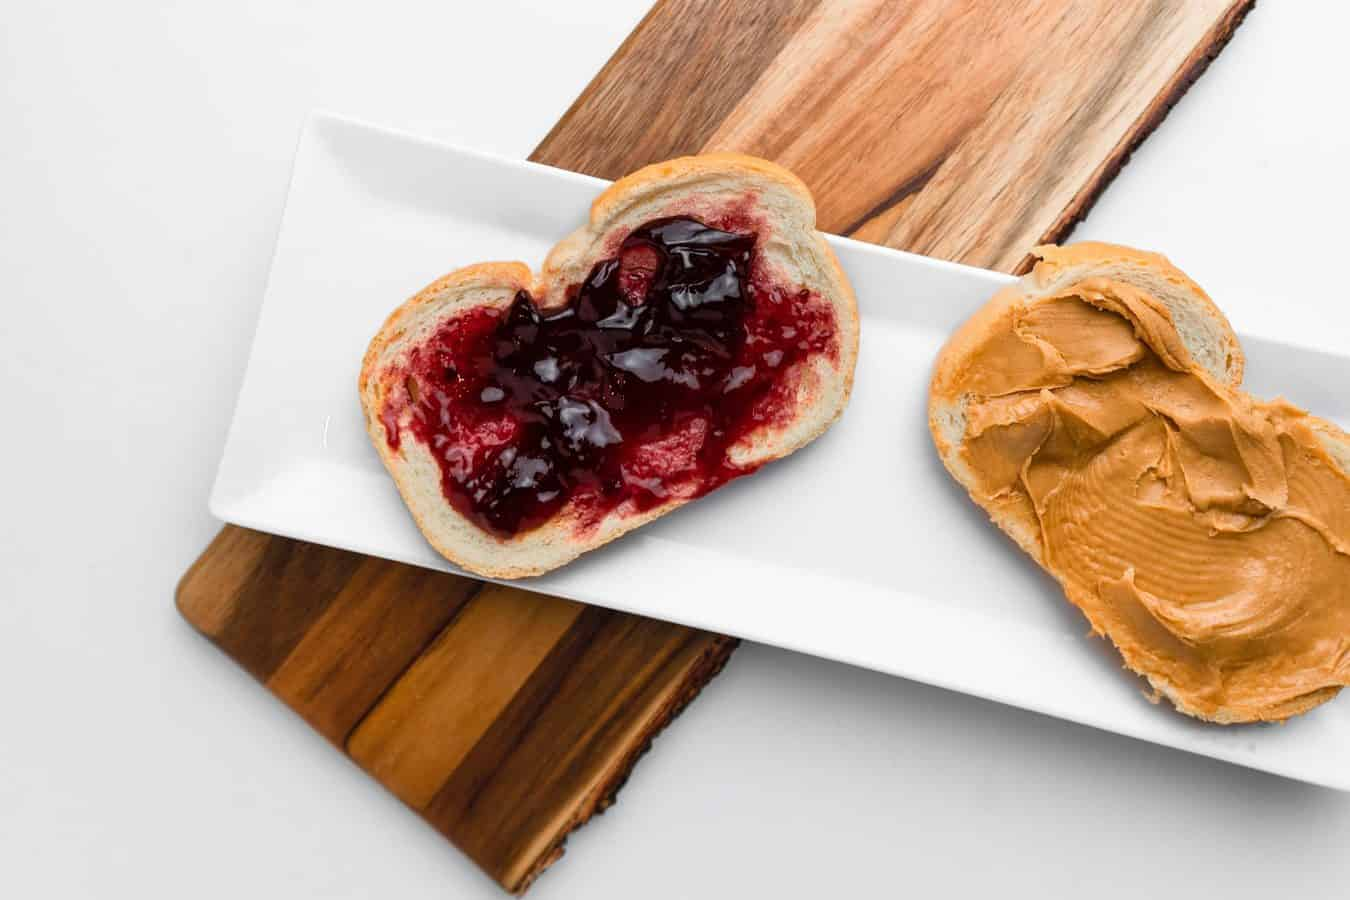 peanut-butter-and-jelly-sanwich